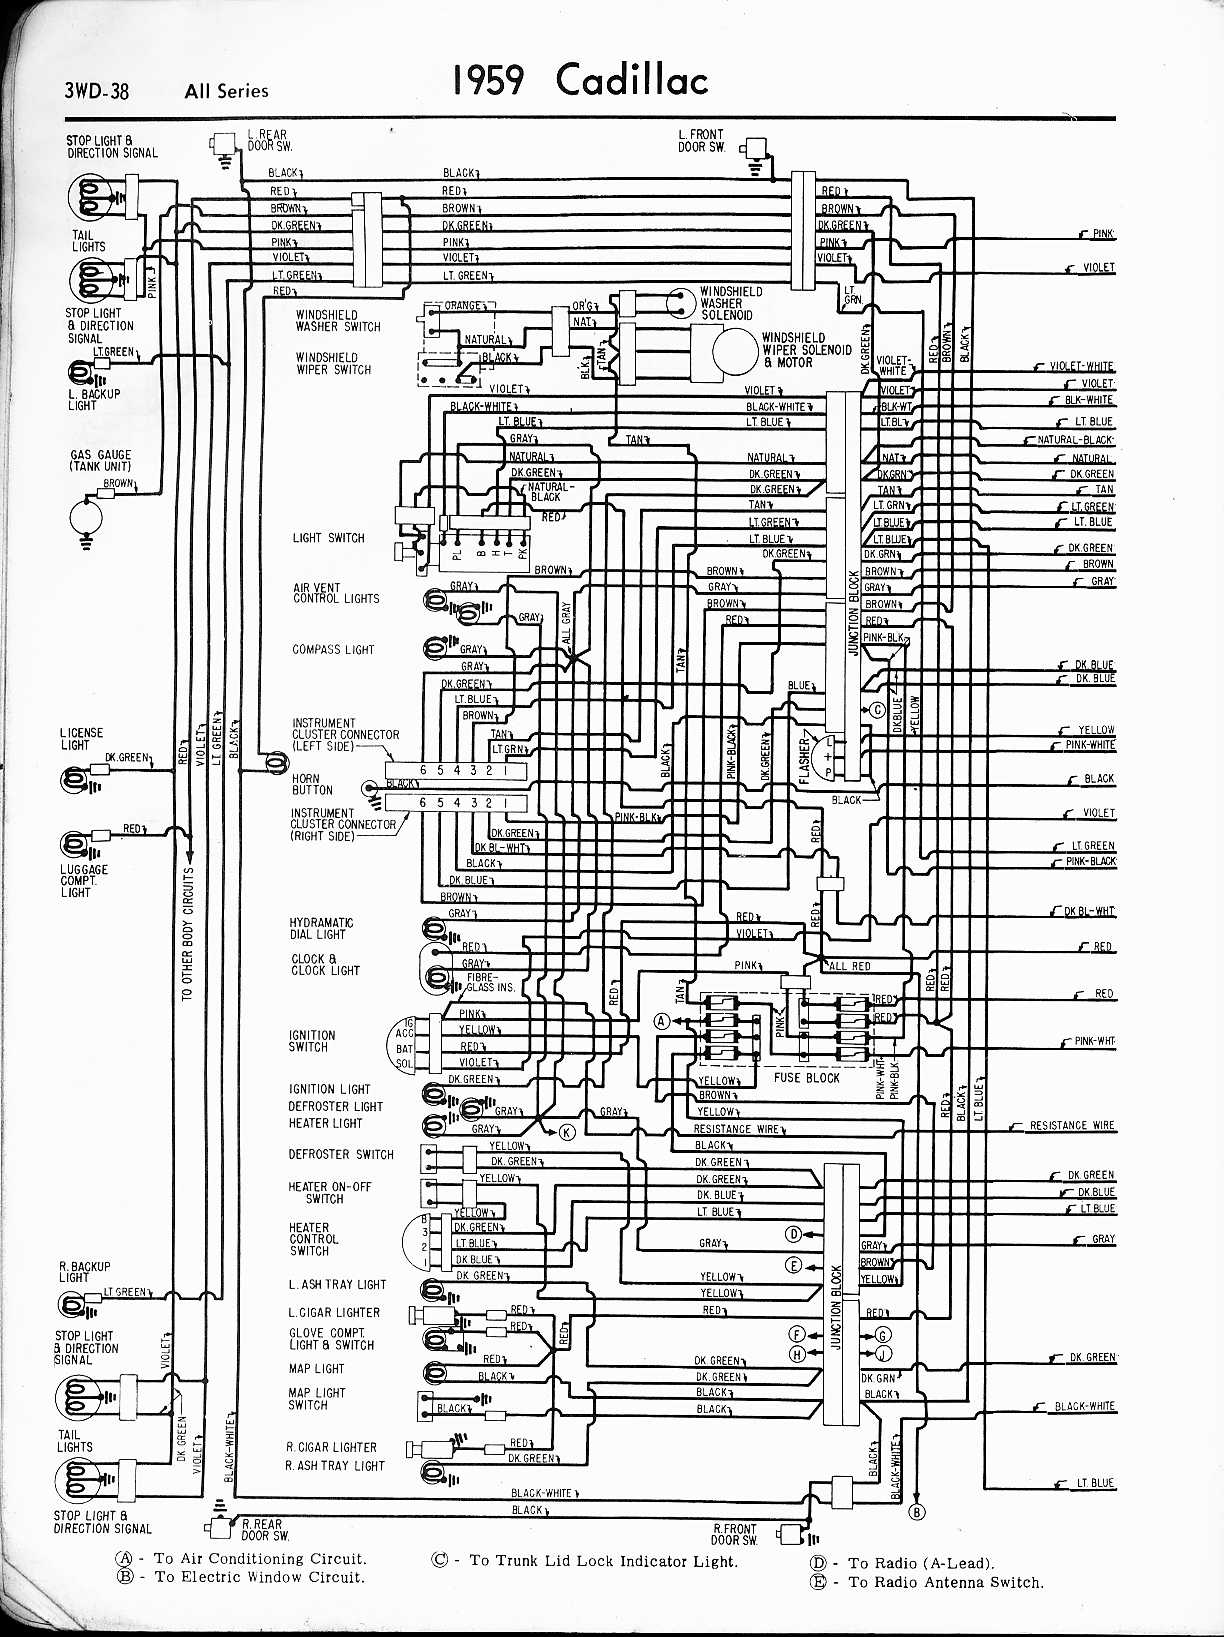 1967 Chevrolet El Camino Wiring Schematic 85 Diagram